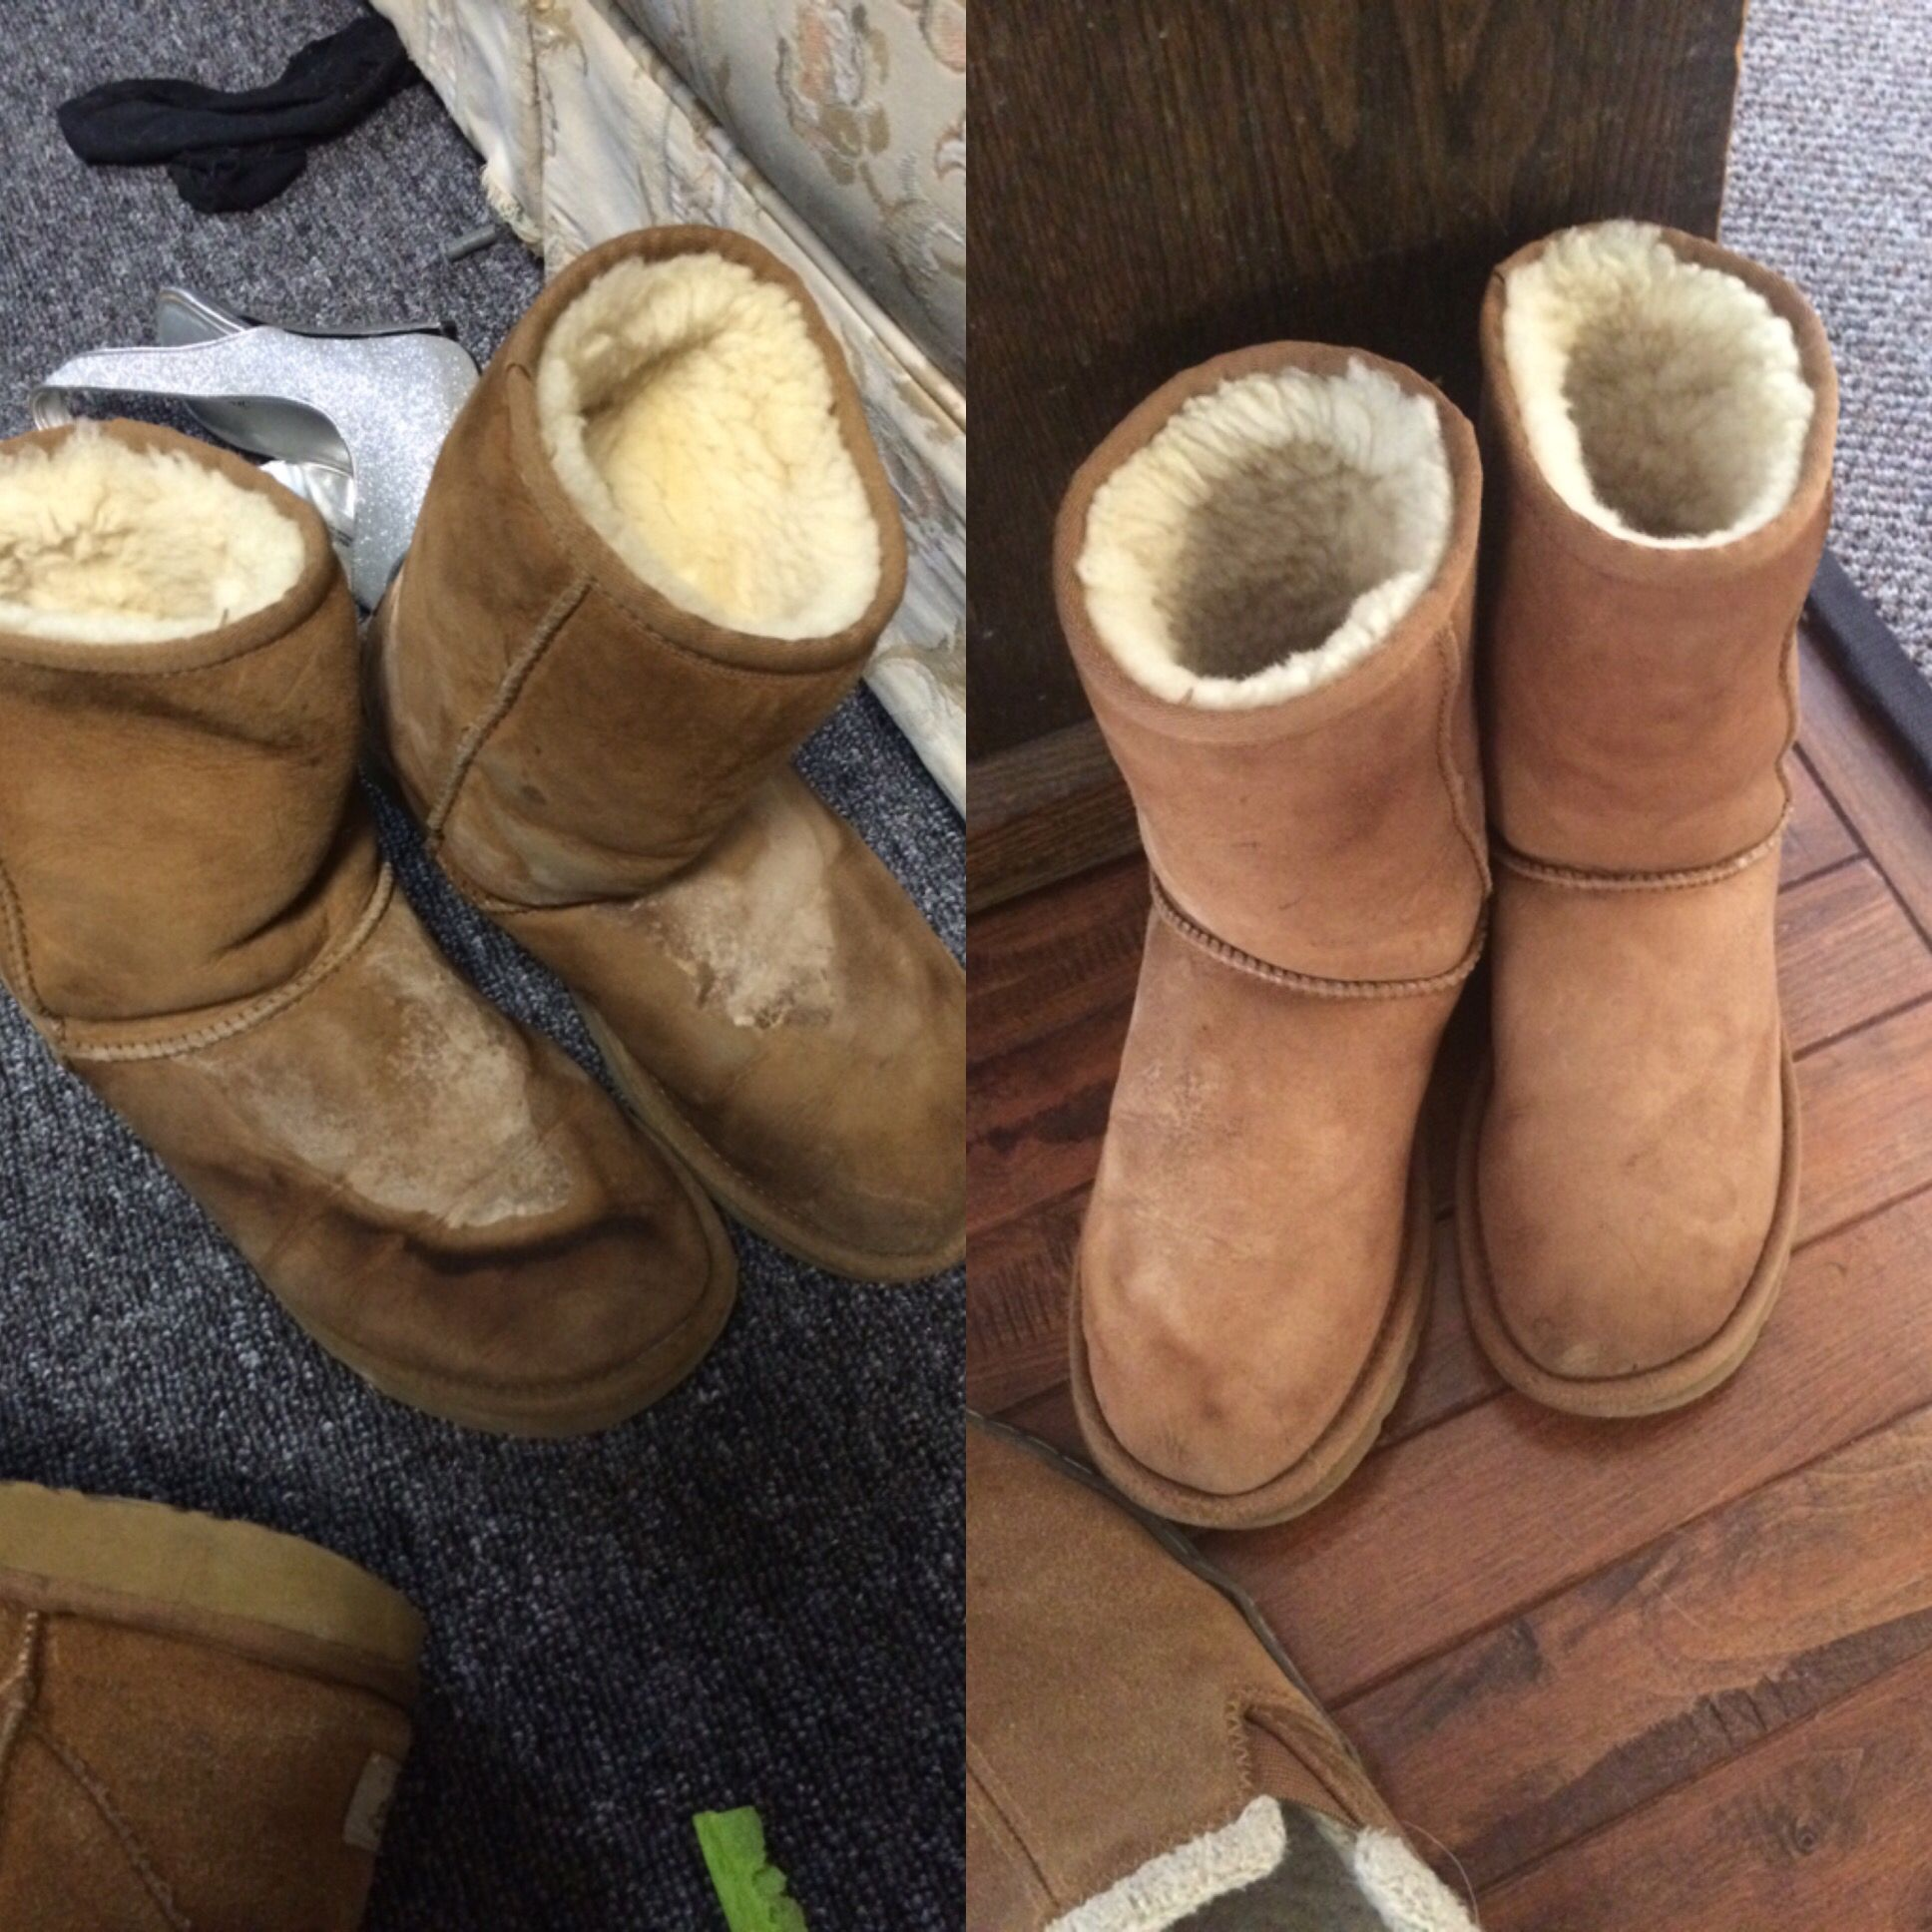 47848db67a3dd9 Before and after my mom cleaned my UGGS! Thank you mamma  ) -(she used the  UGG cleaner and then scrubbed lightly to remove the stains